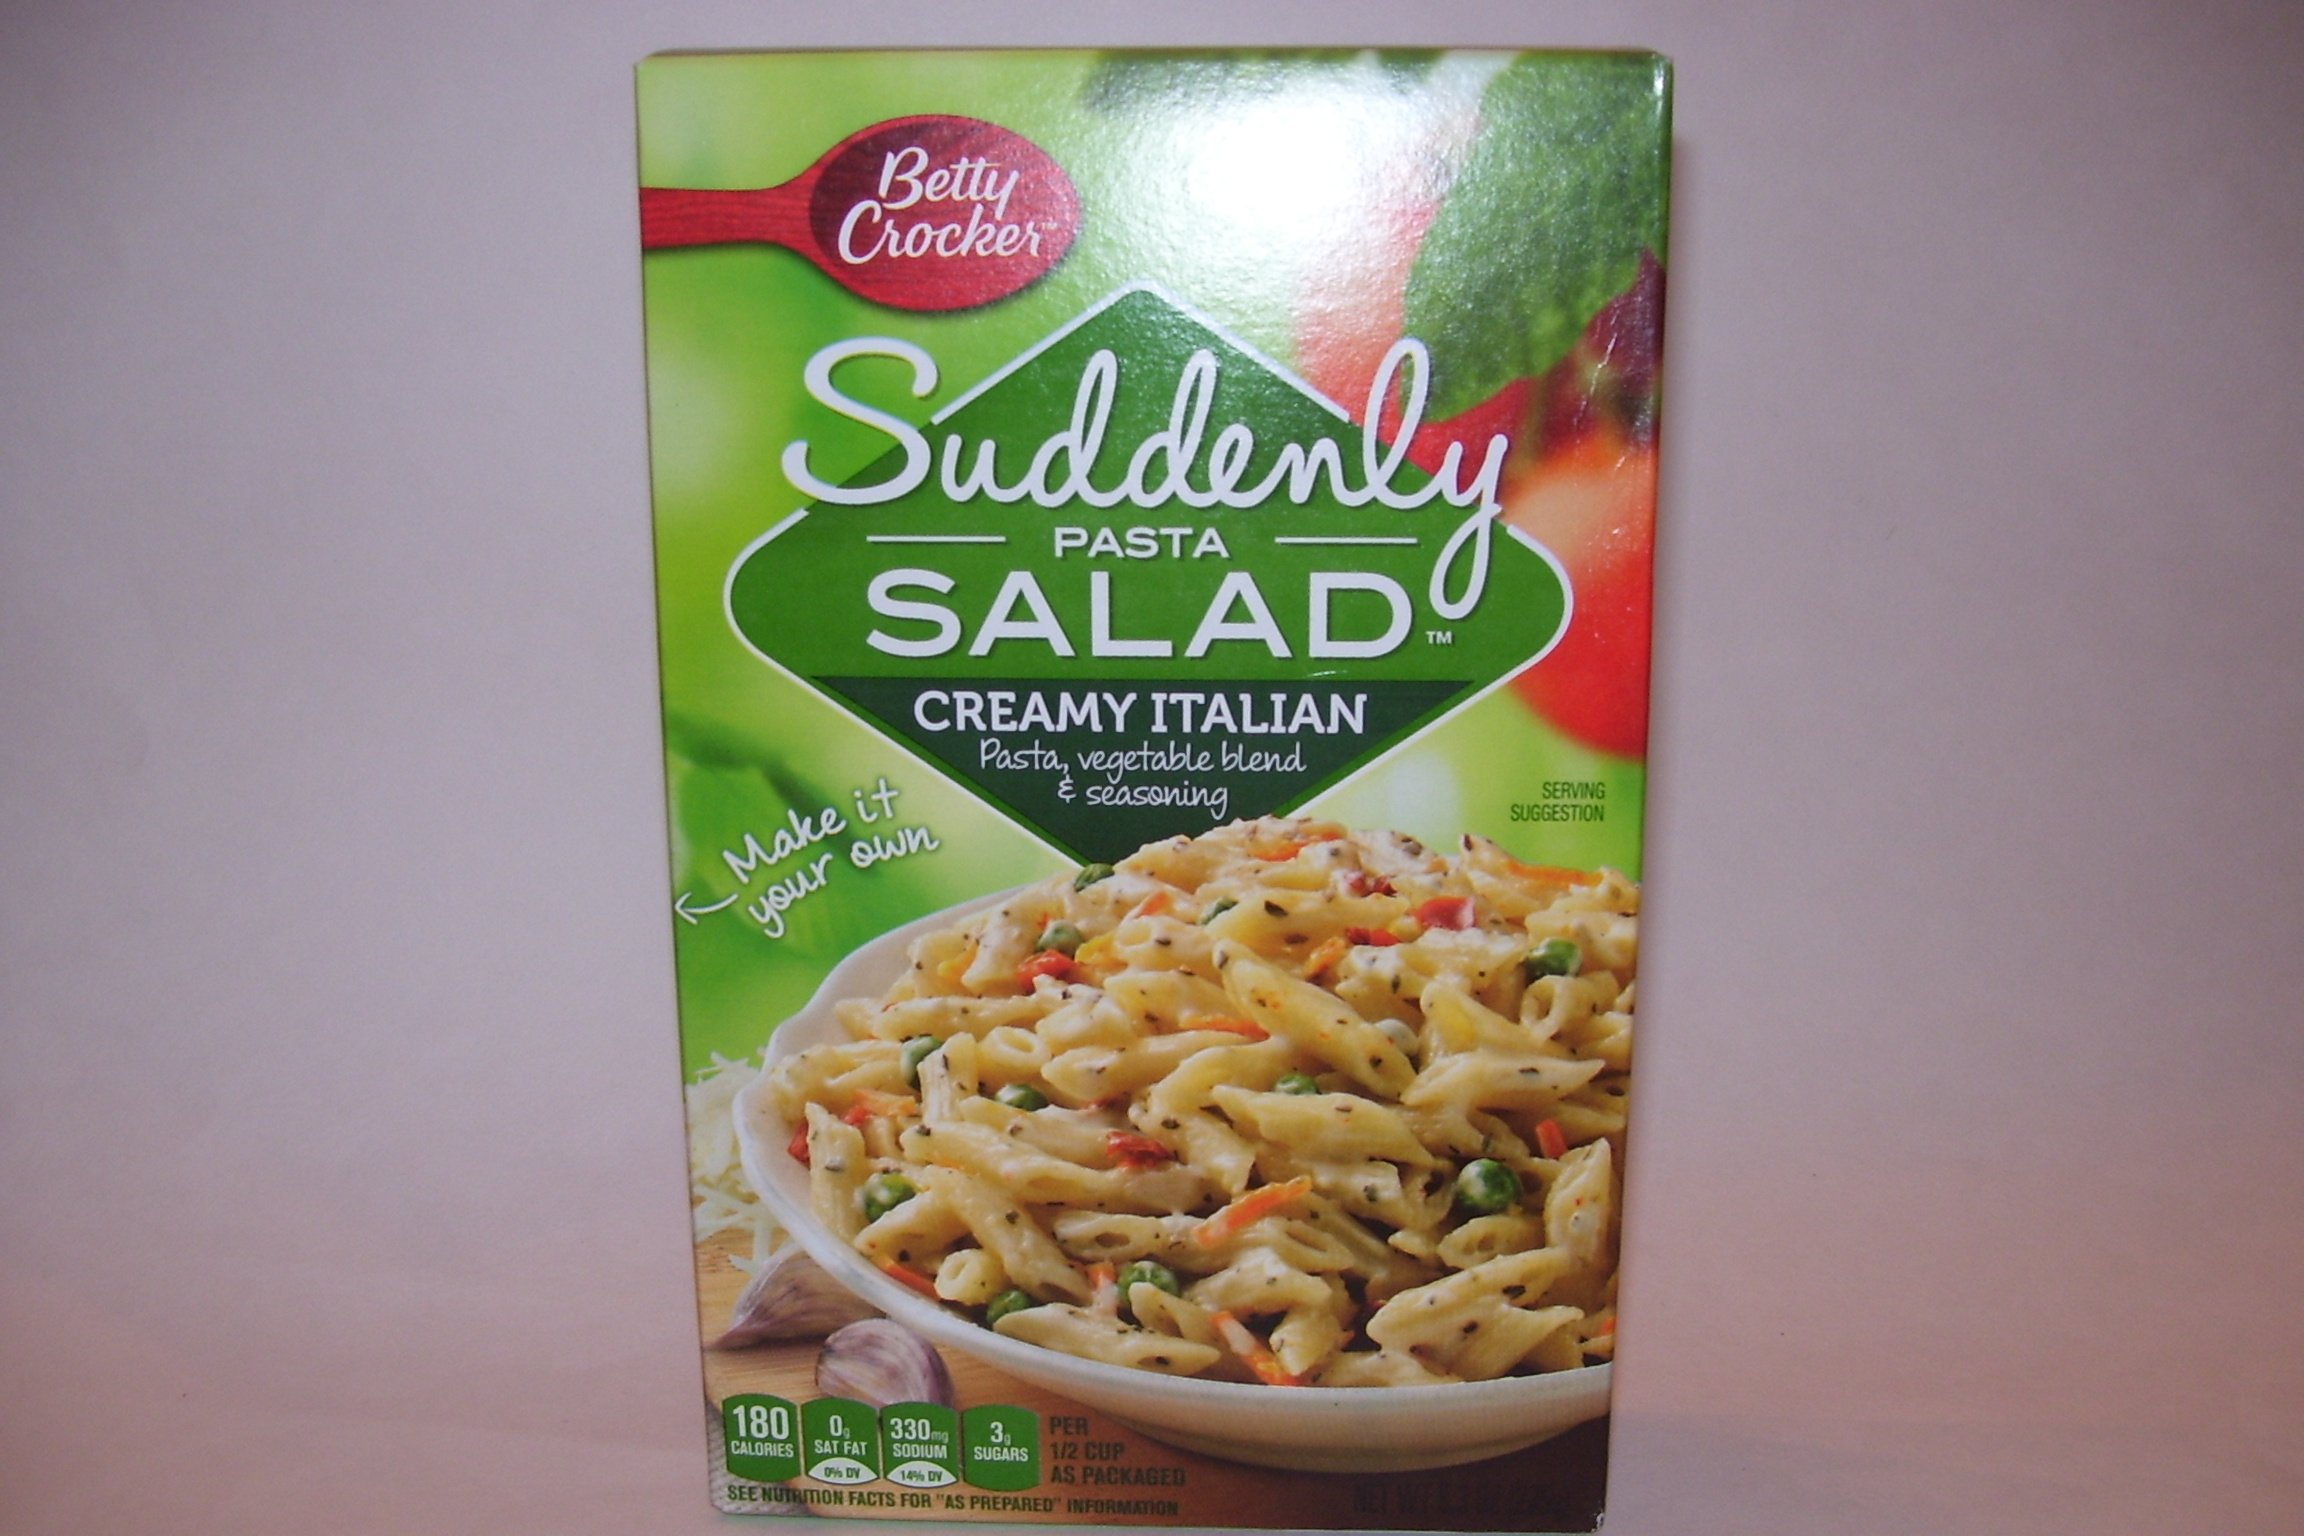 Betty Crocker Suddenly Pasta Salad, Creamy Italian, 8.3-Ounce Boxes (Pack of 4)